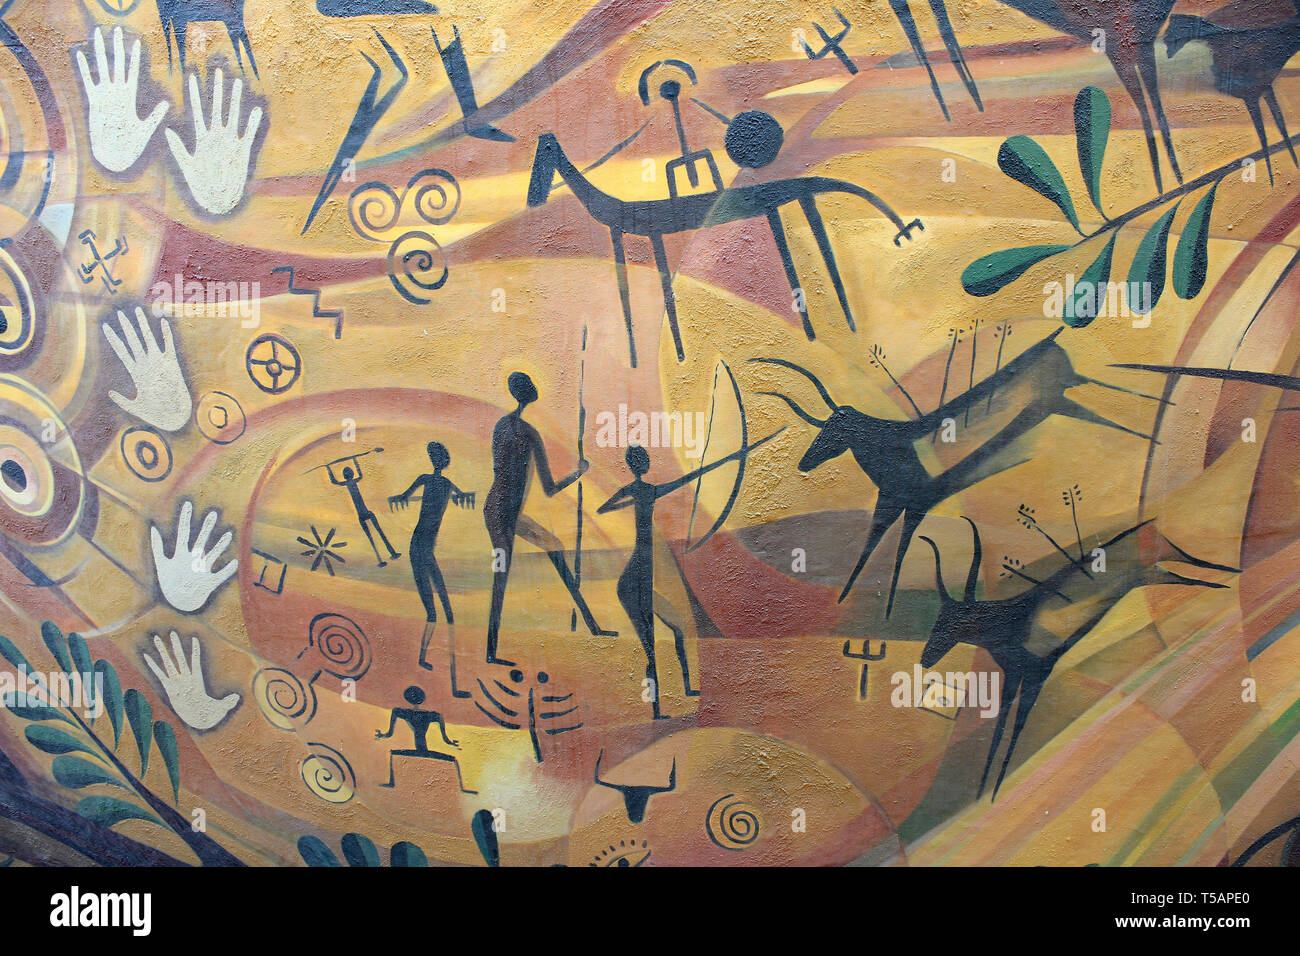 Modern Art in the style of a Cave Painting depicting Prehistoric Hunting and Hand Prints - Stock Image